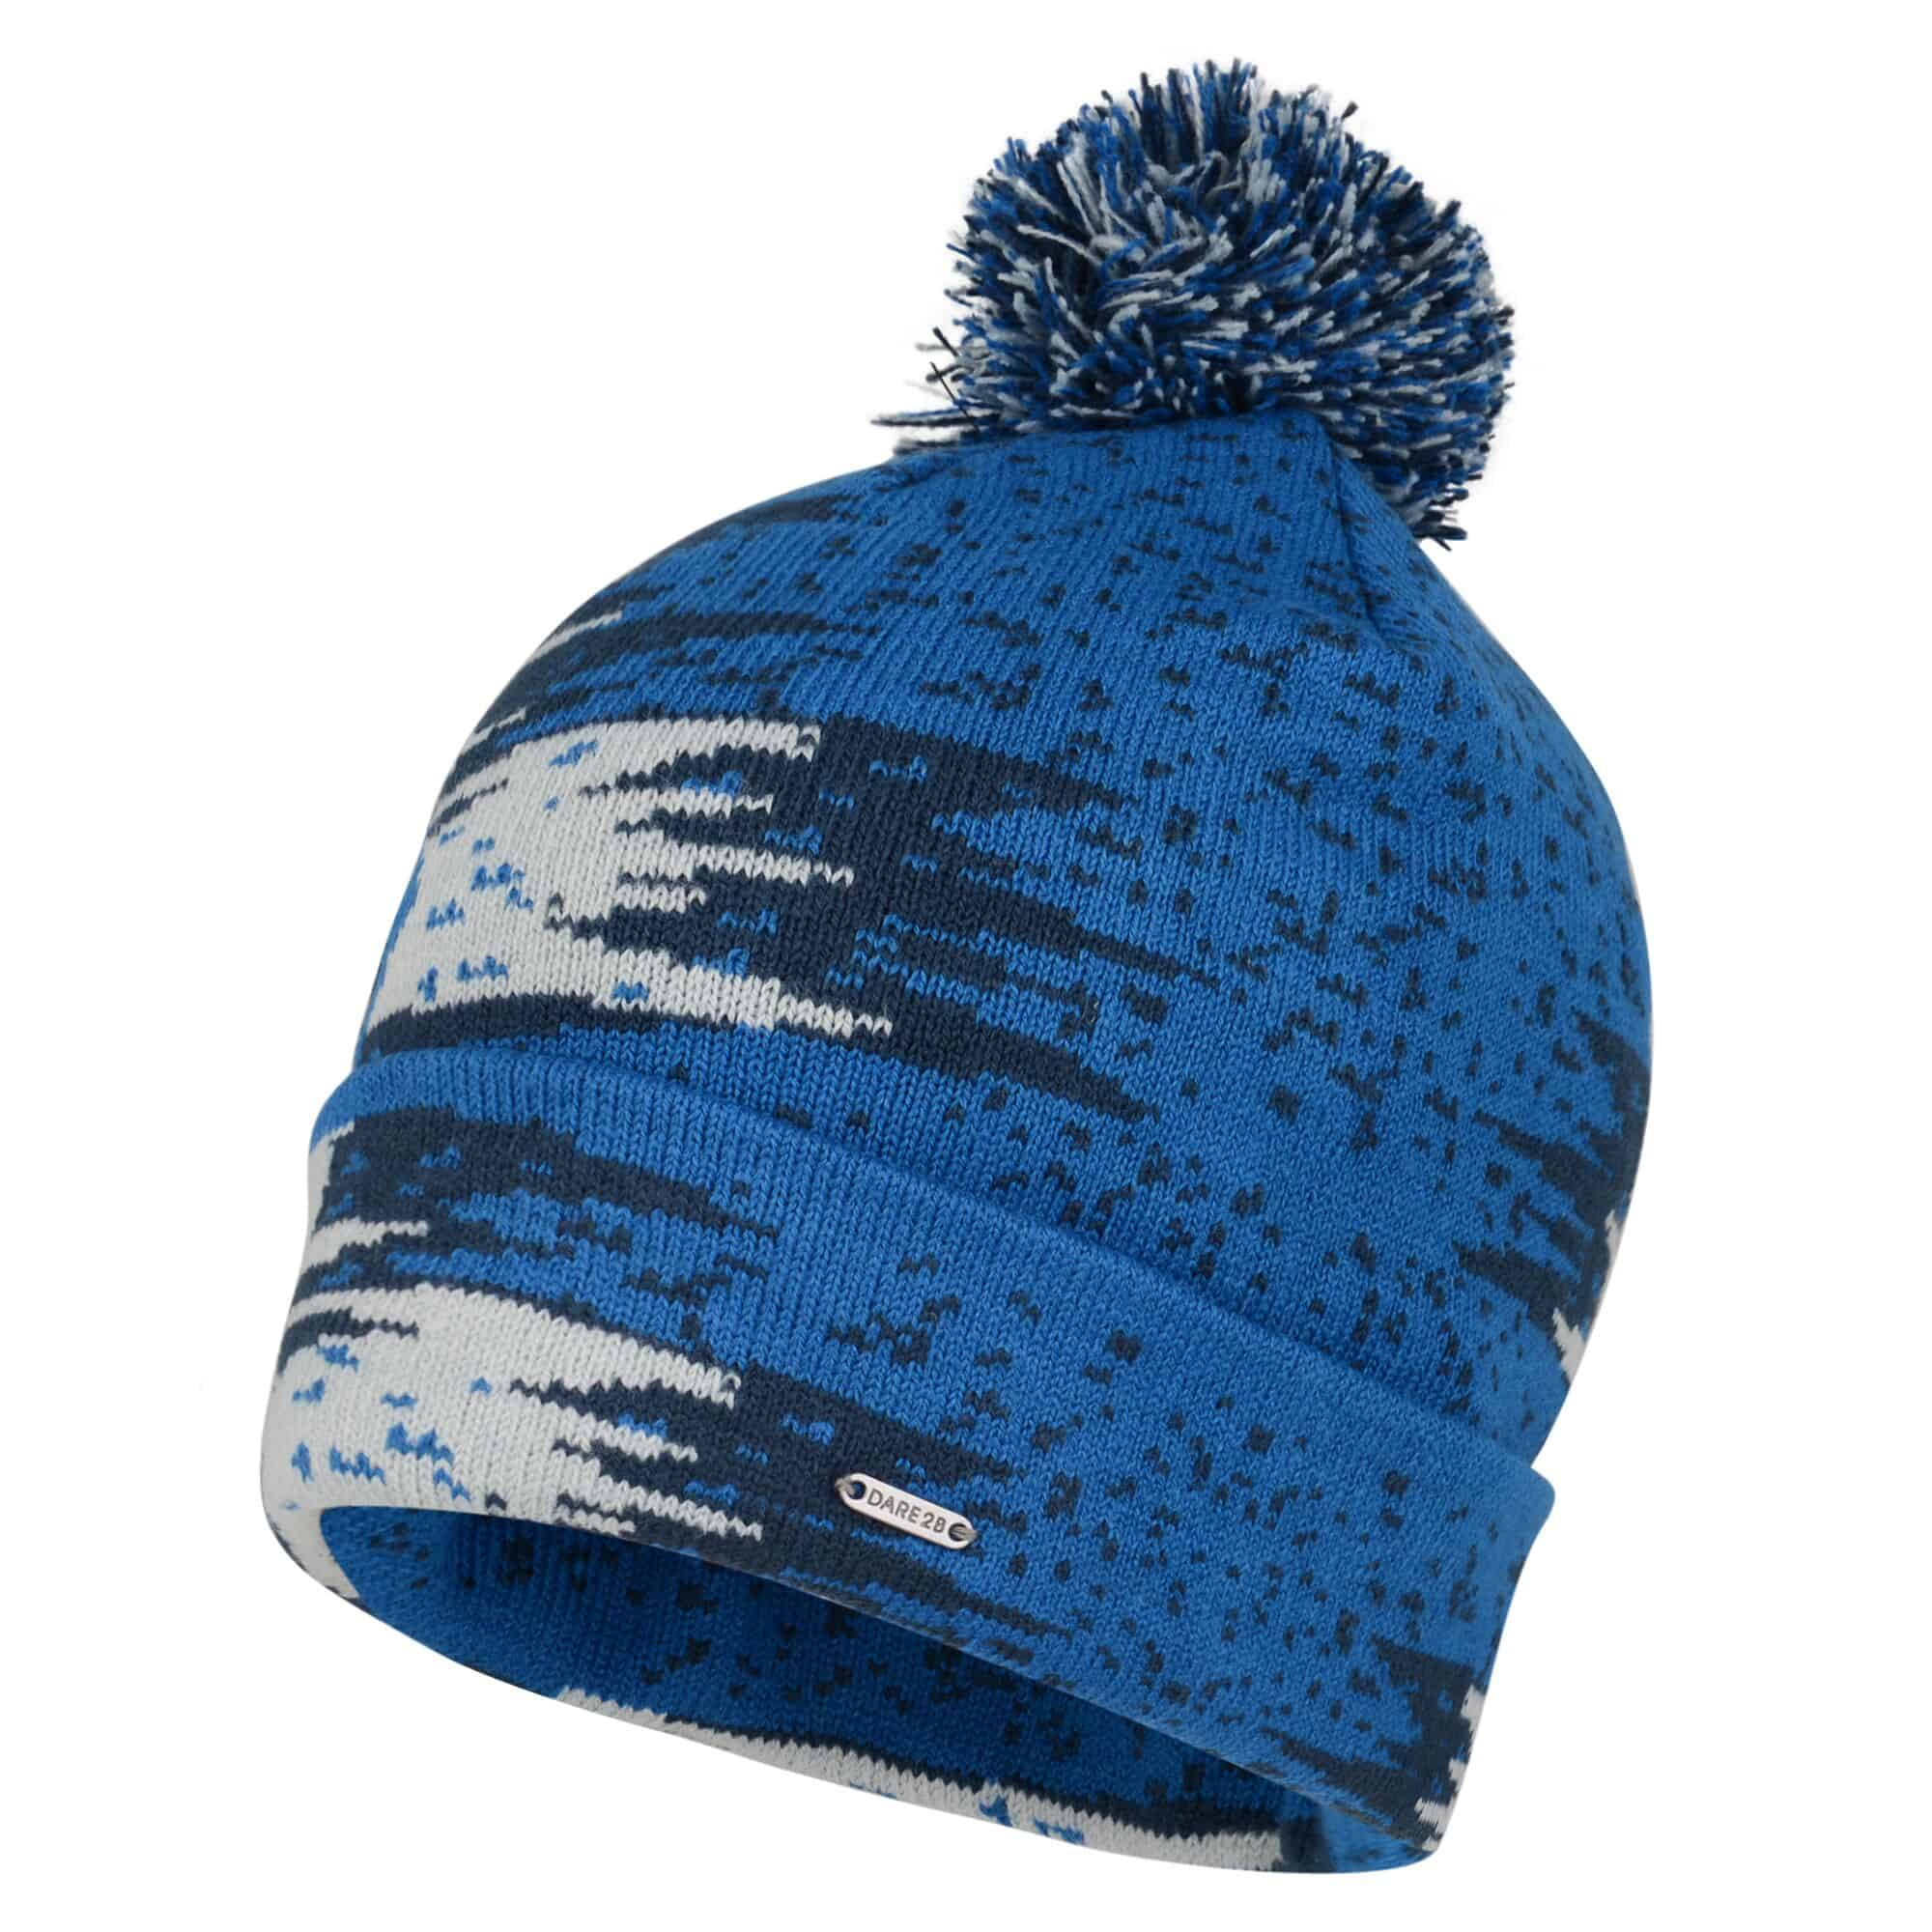 Dauntless Beanie Oxford Blue DMC336_15